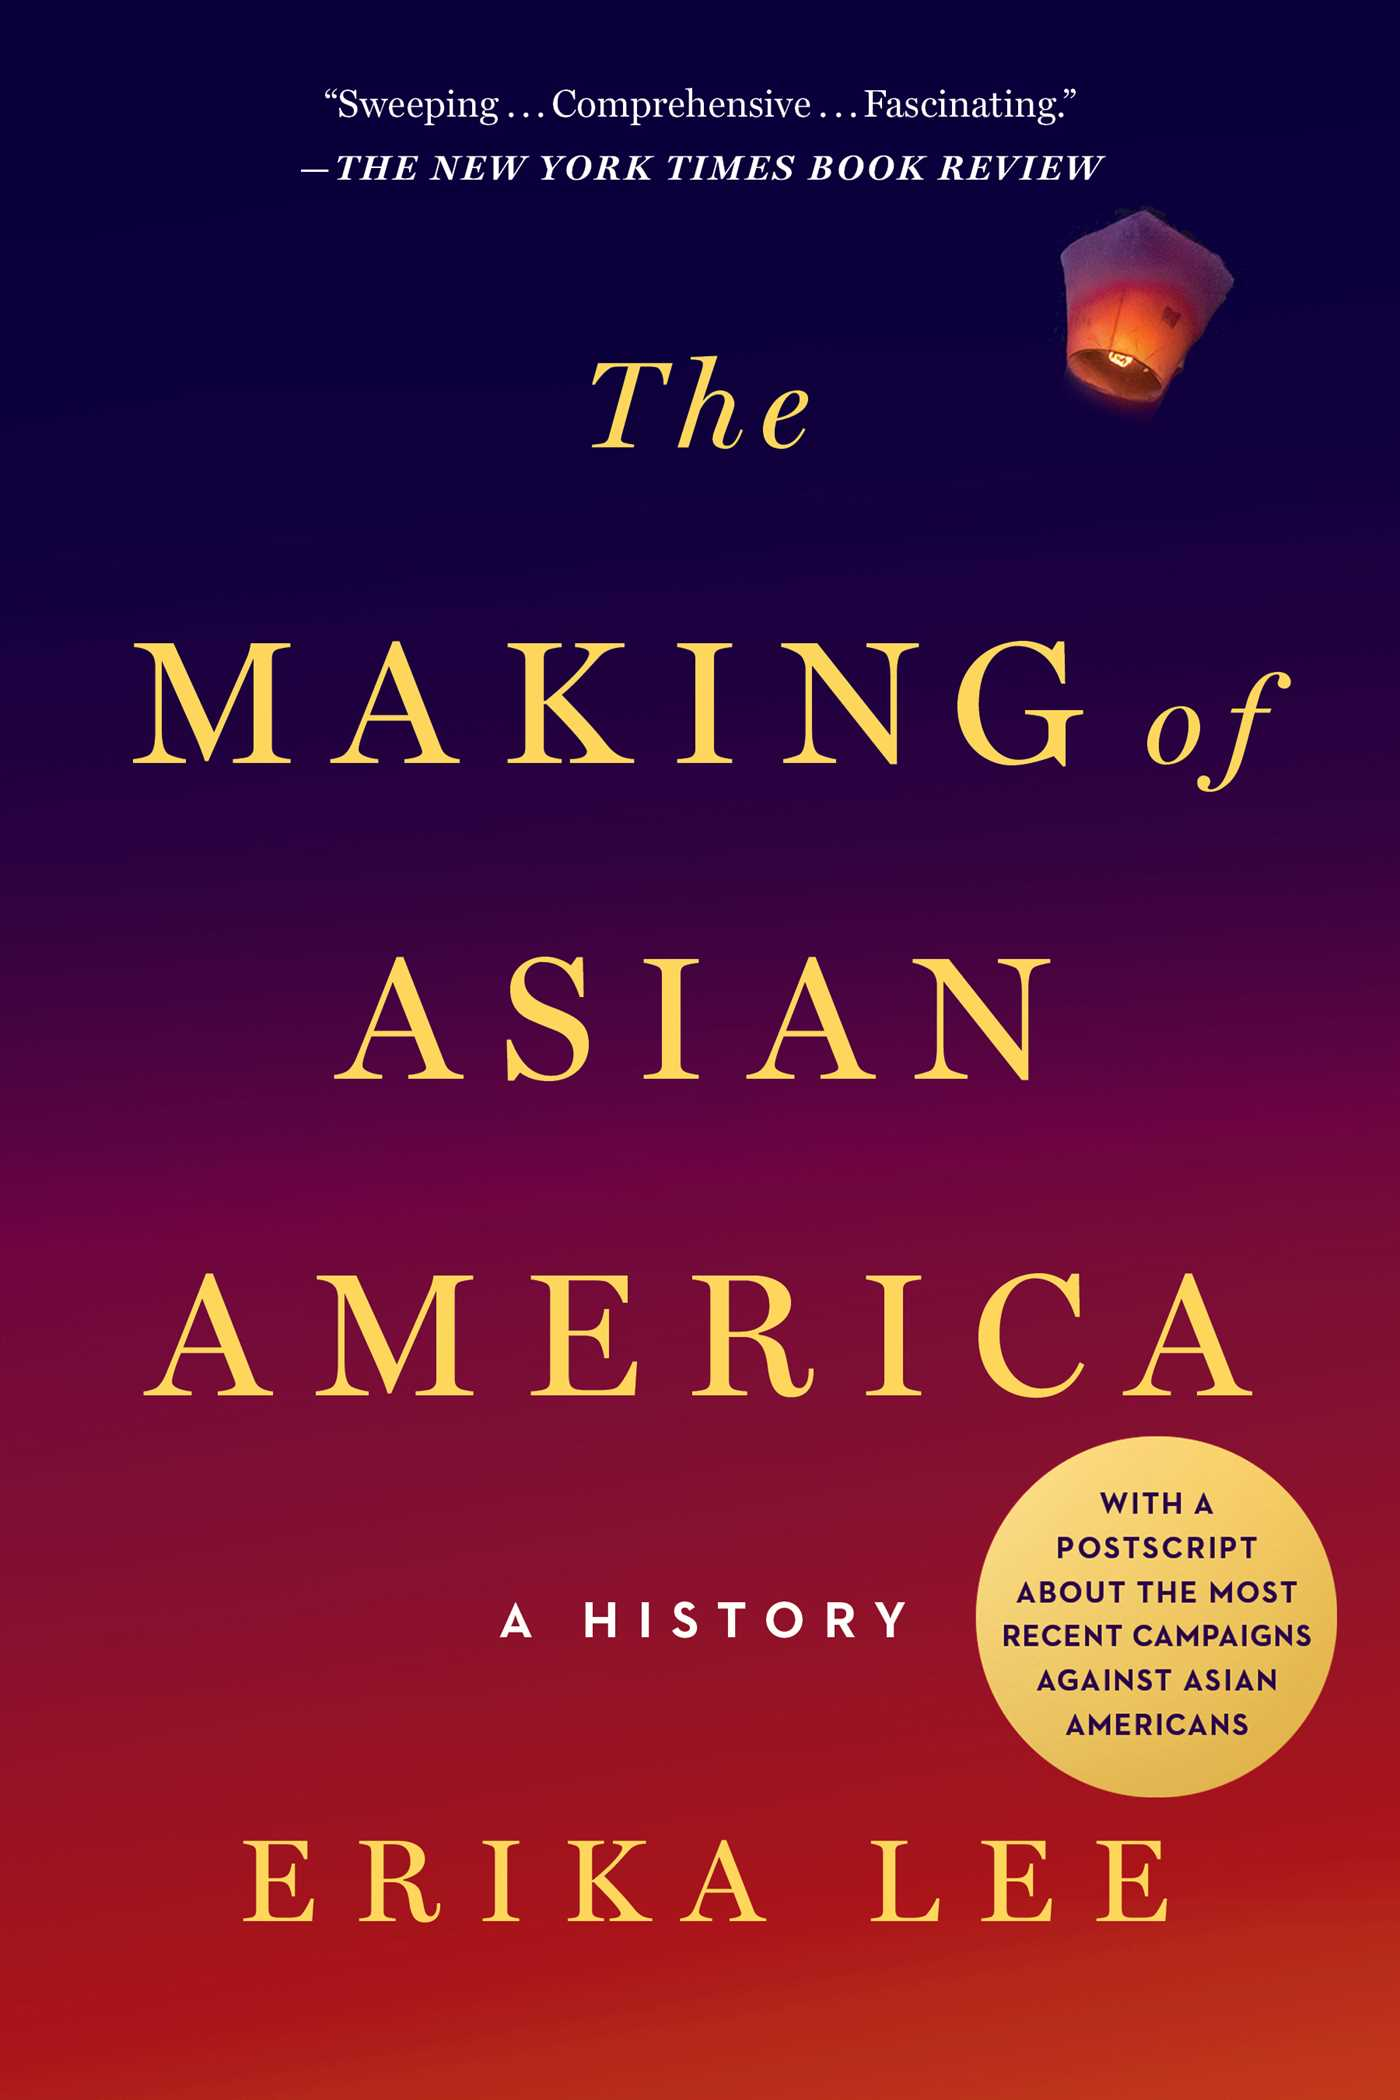 The making of asian america 9781476739427 hr